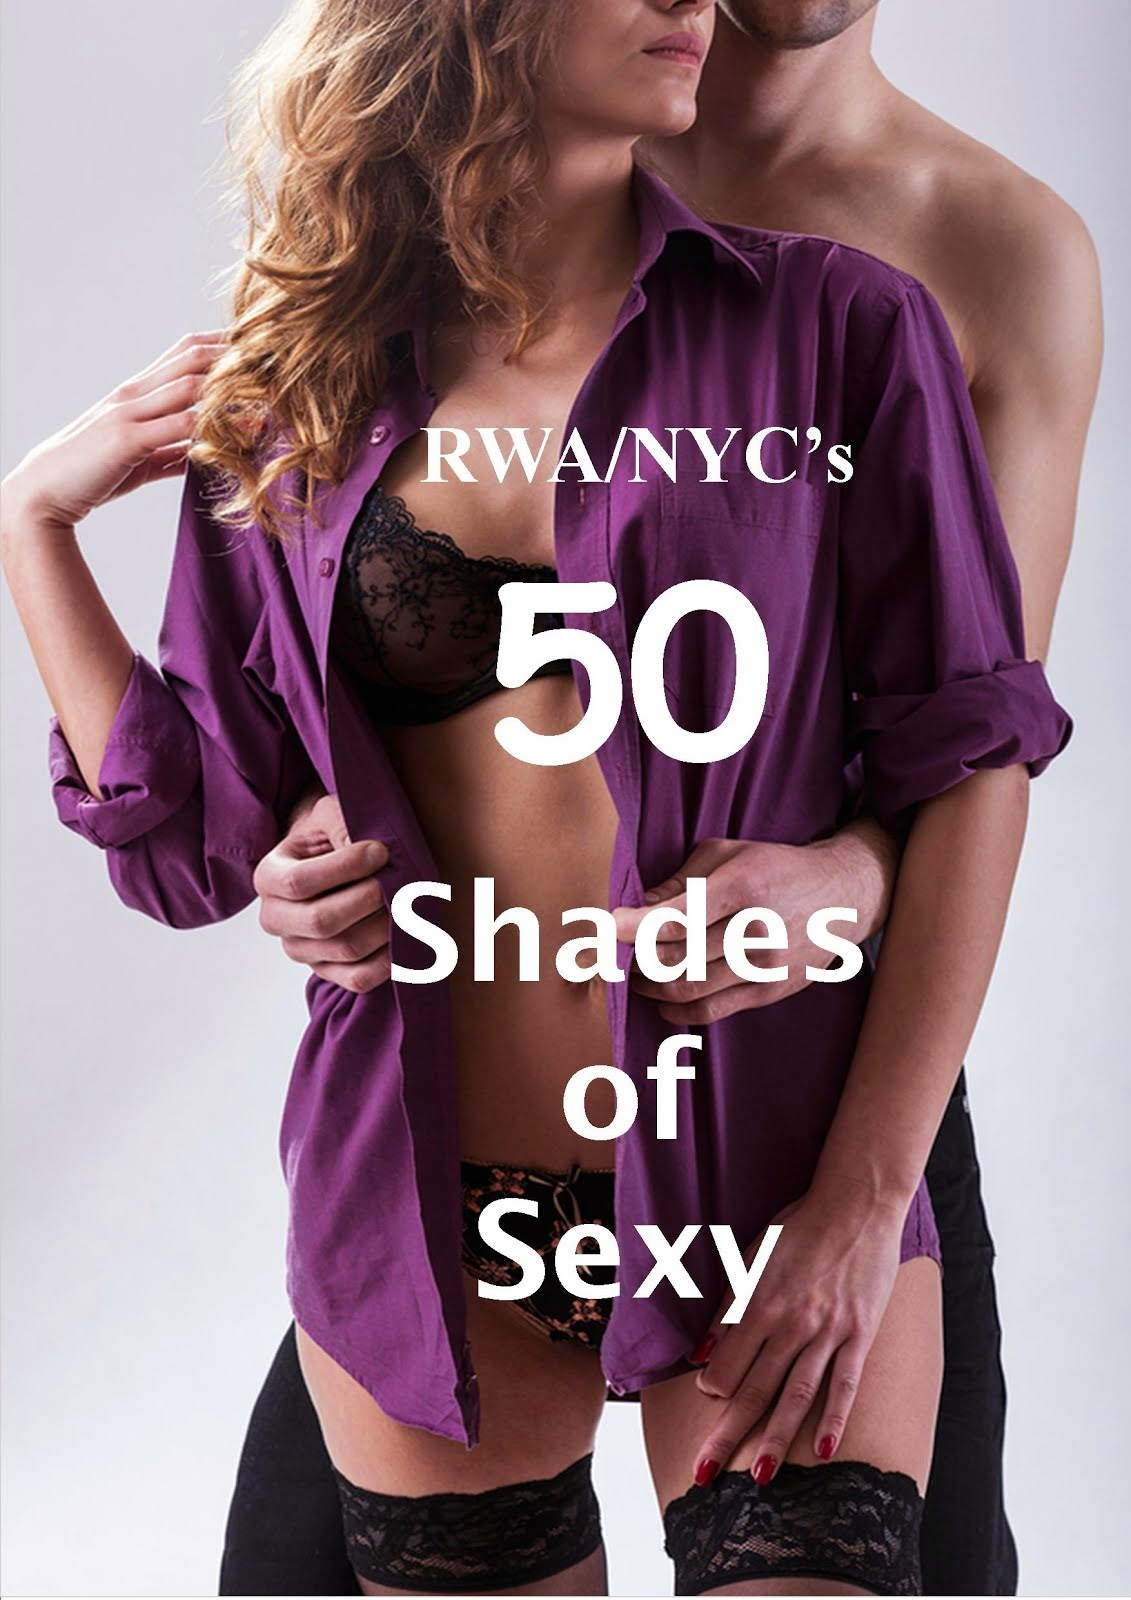 50 SHADES OF SEXY BLOG TOUR